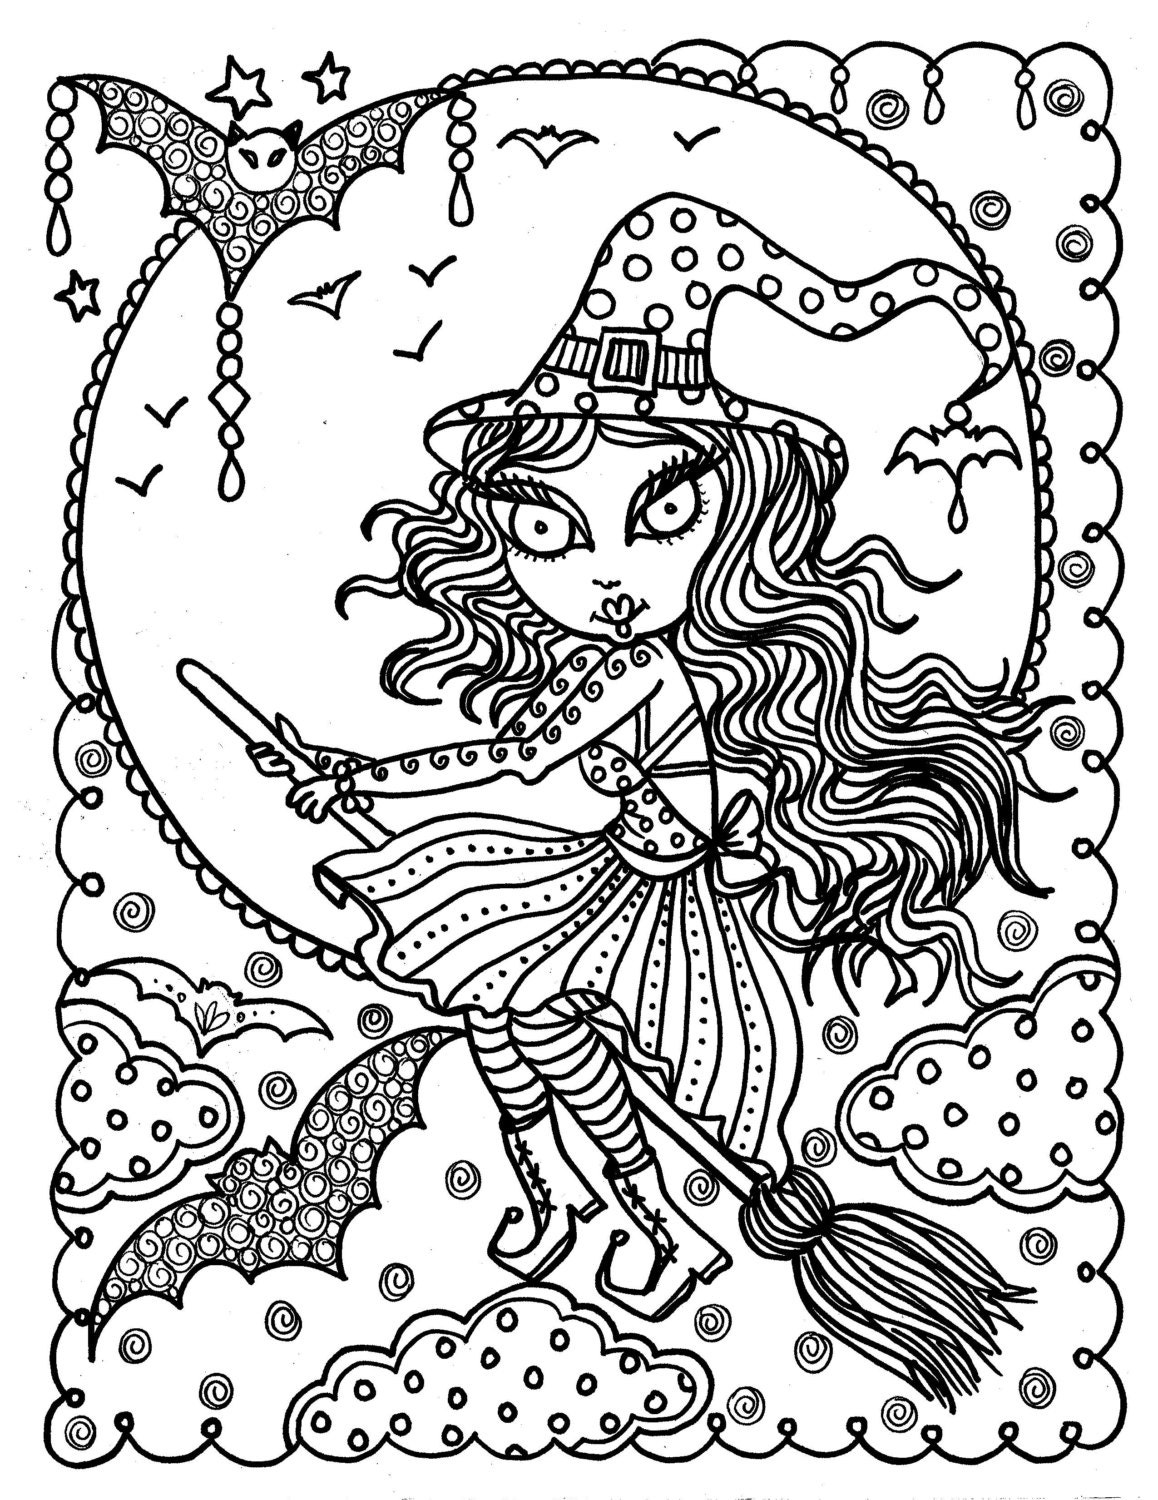 Cute witch halloween coloring page fun coloring instant for Halloween coloring pages for adults printables